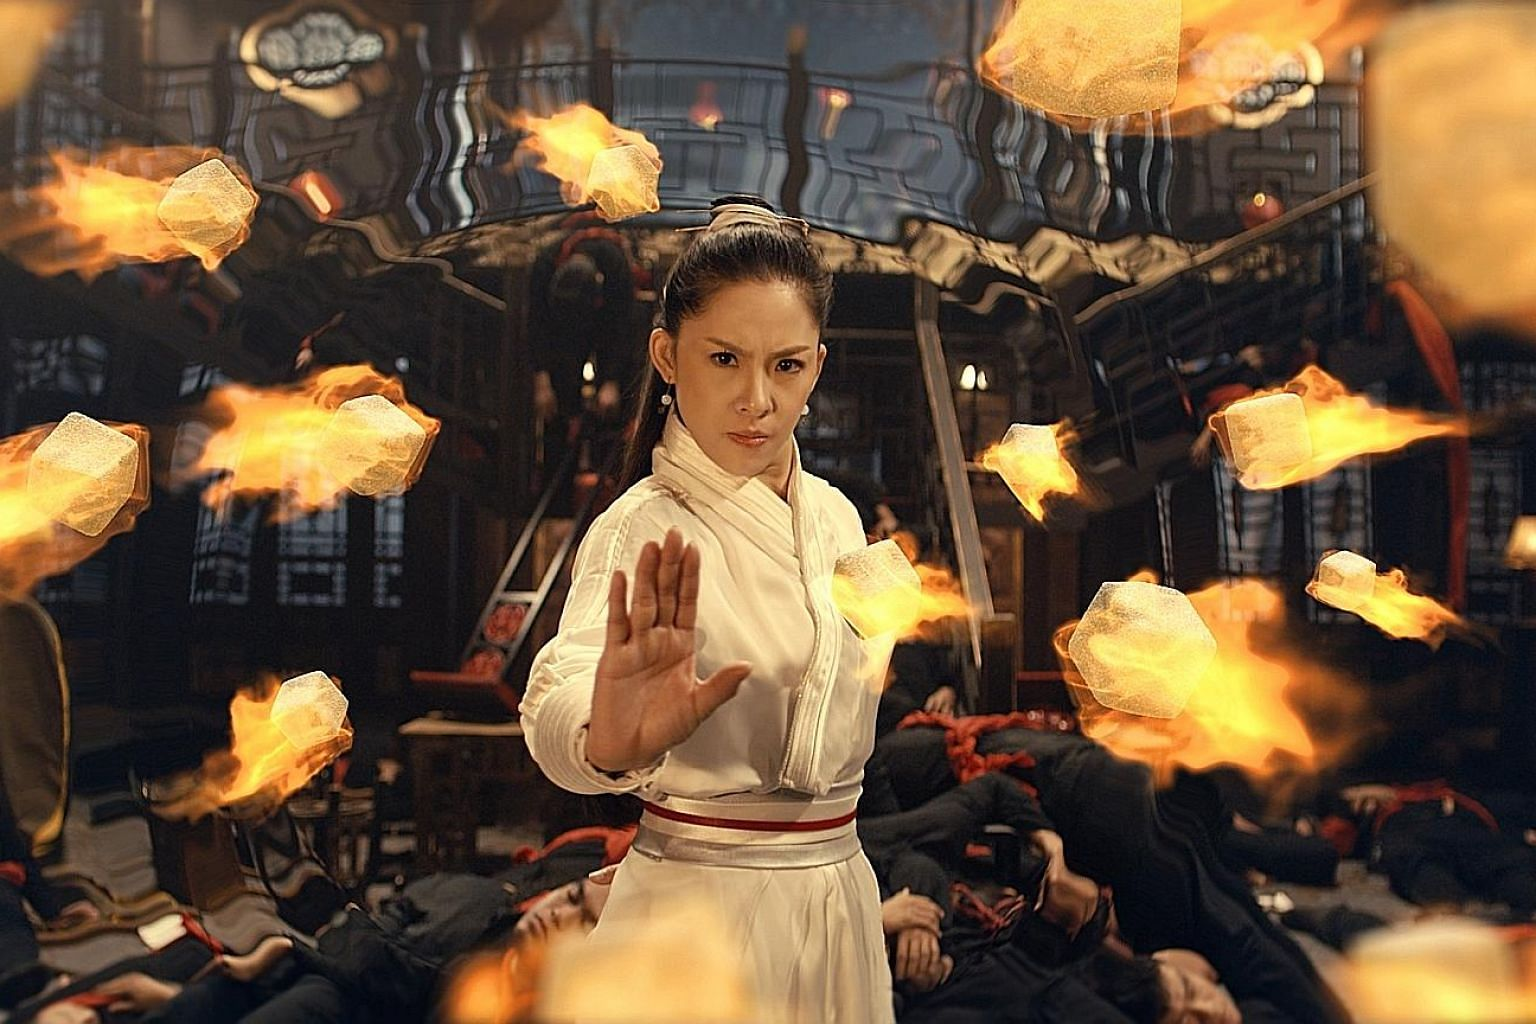 In Kungfu Fighter, Hidden Sugar, a gongfu heroine confronts a villain and his posse who add sugar to a family's reunion dinner.